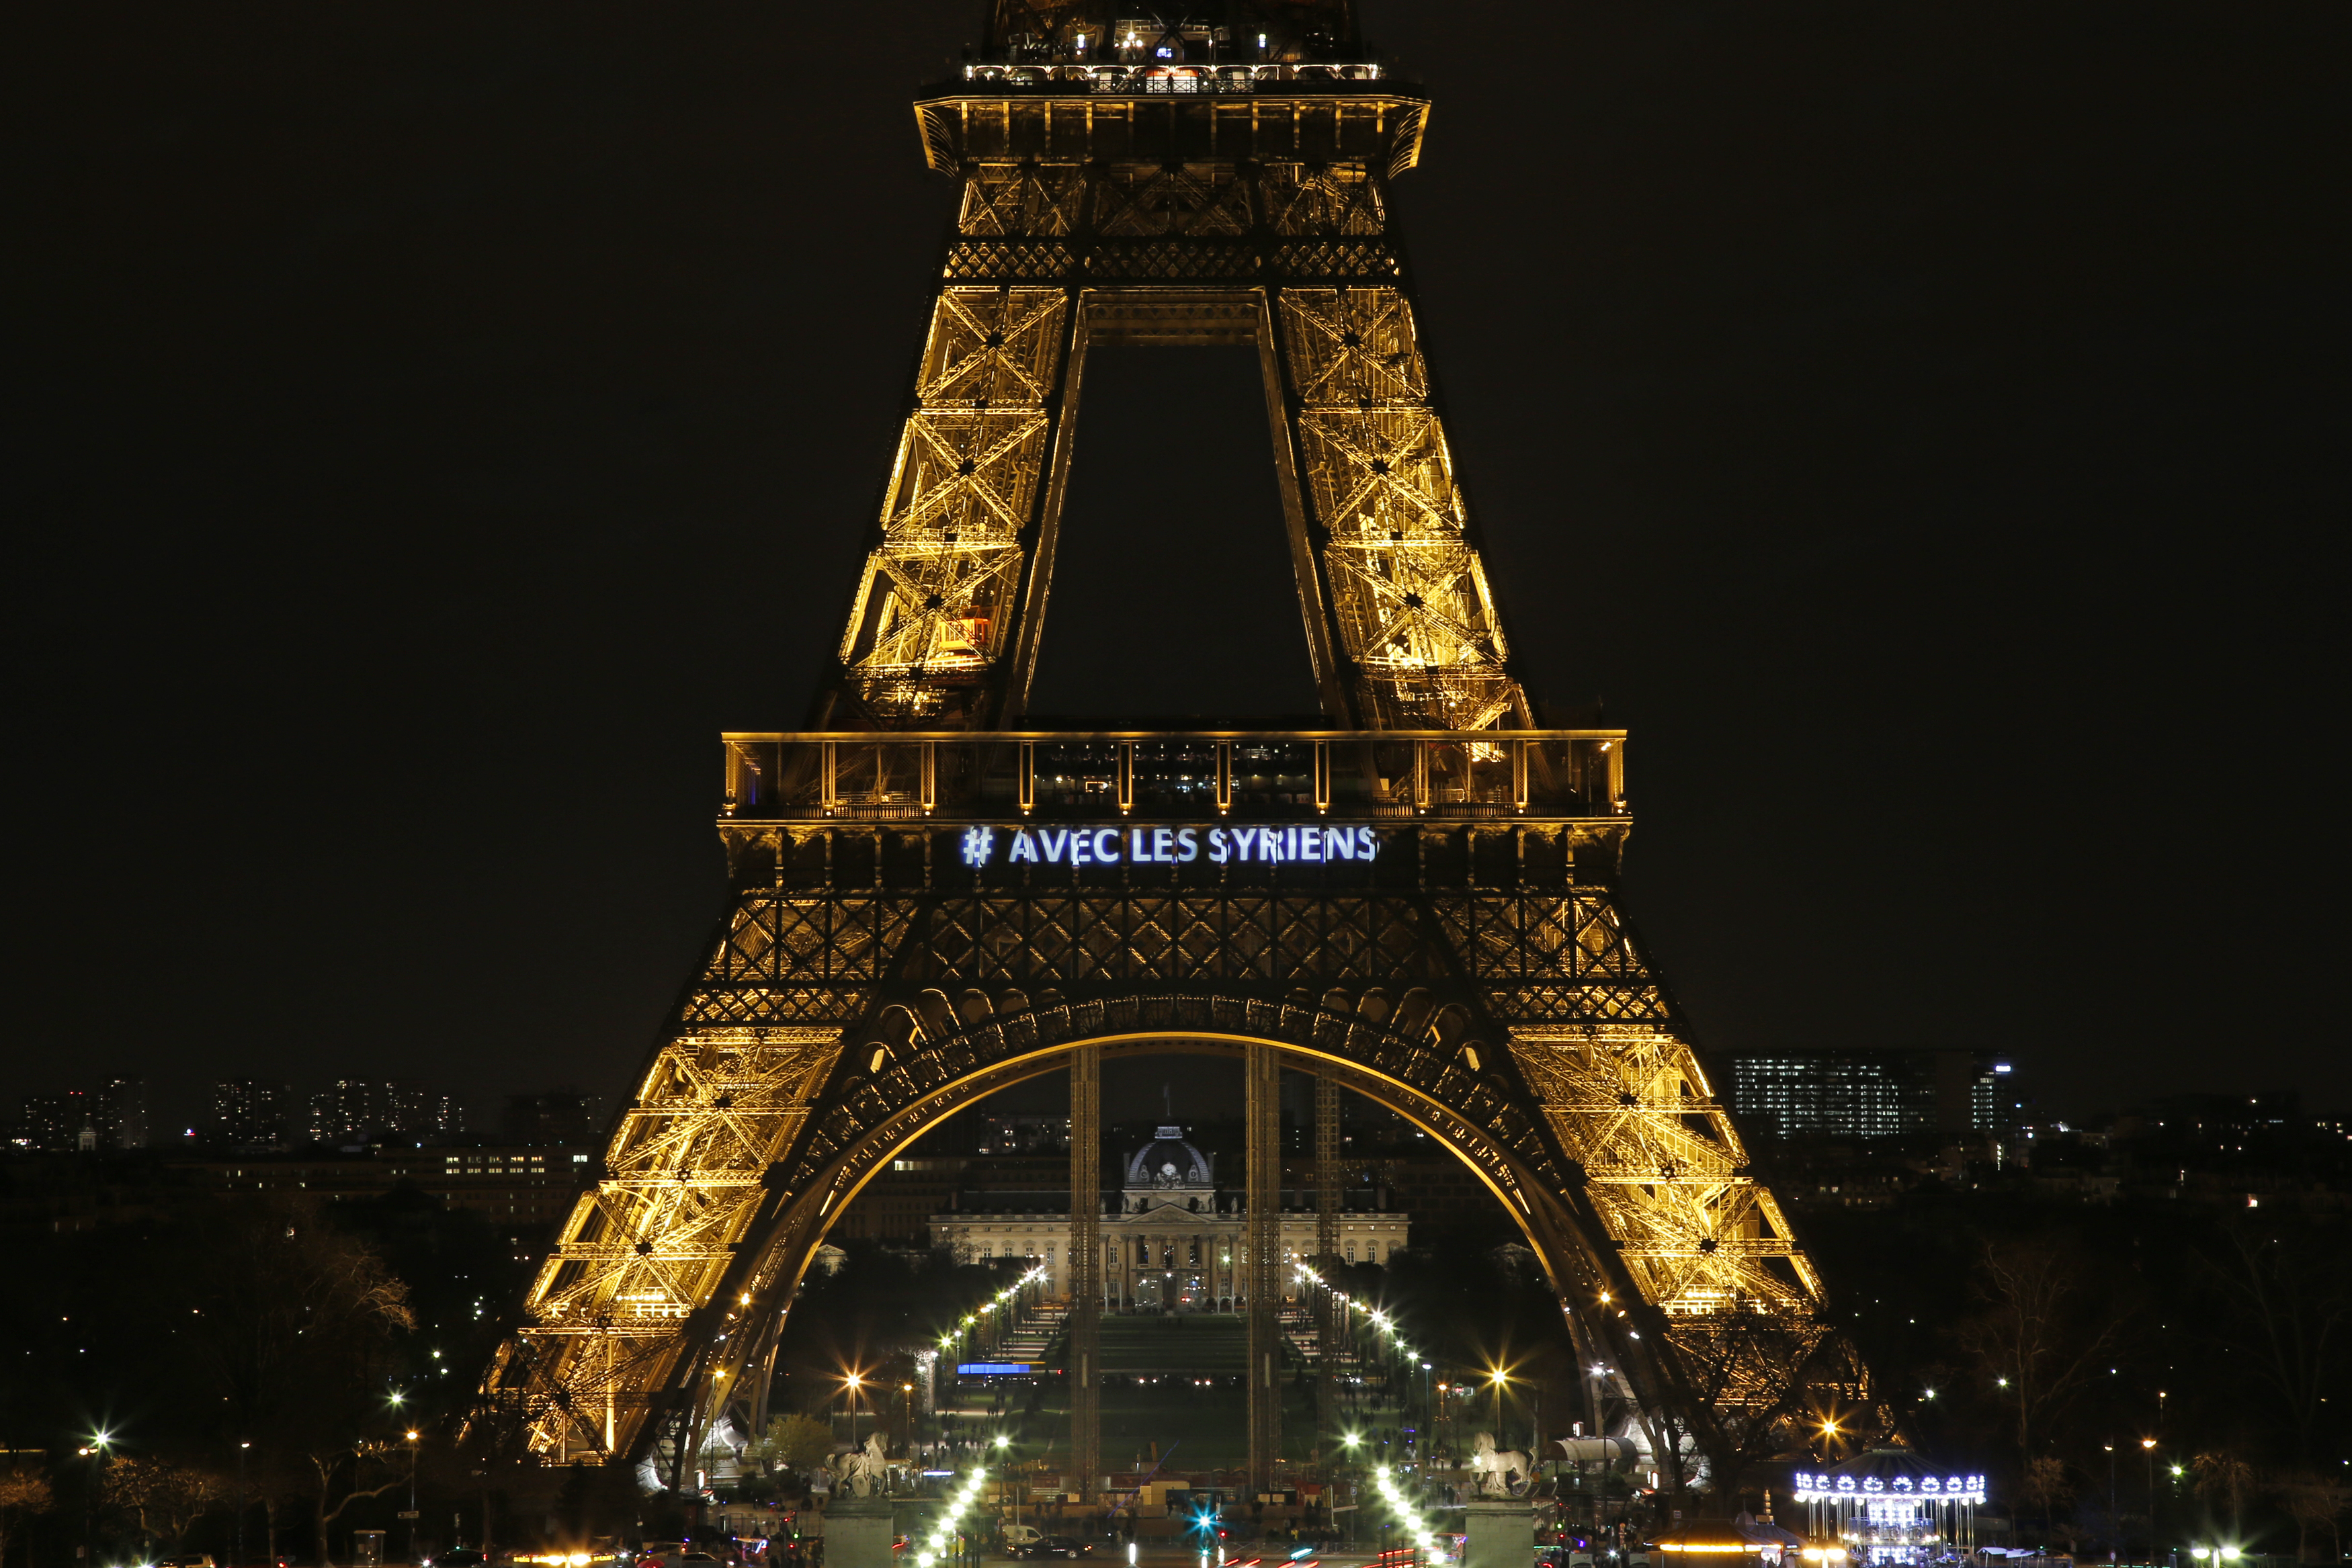 The words  With the Syrians  are displayed on the Eiffel Tower in Paris on March 15, 2014, in support of Syrians on the third anniversary of the conflict that has claimed more than 140,000 lives. On July 9, 2014, French police revealed transcripts of encrypted messages from a French jihadist who planned to target the Eiffel Tower and other French landmarks.